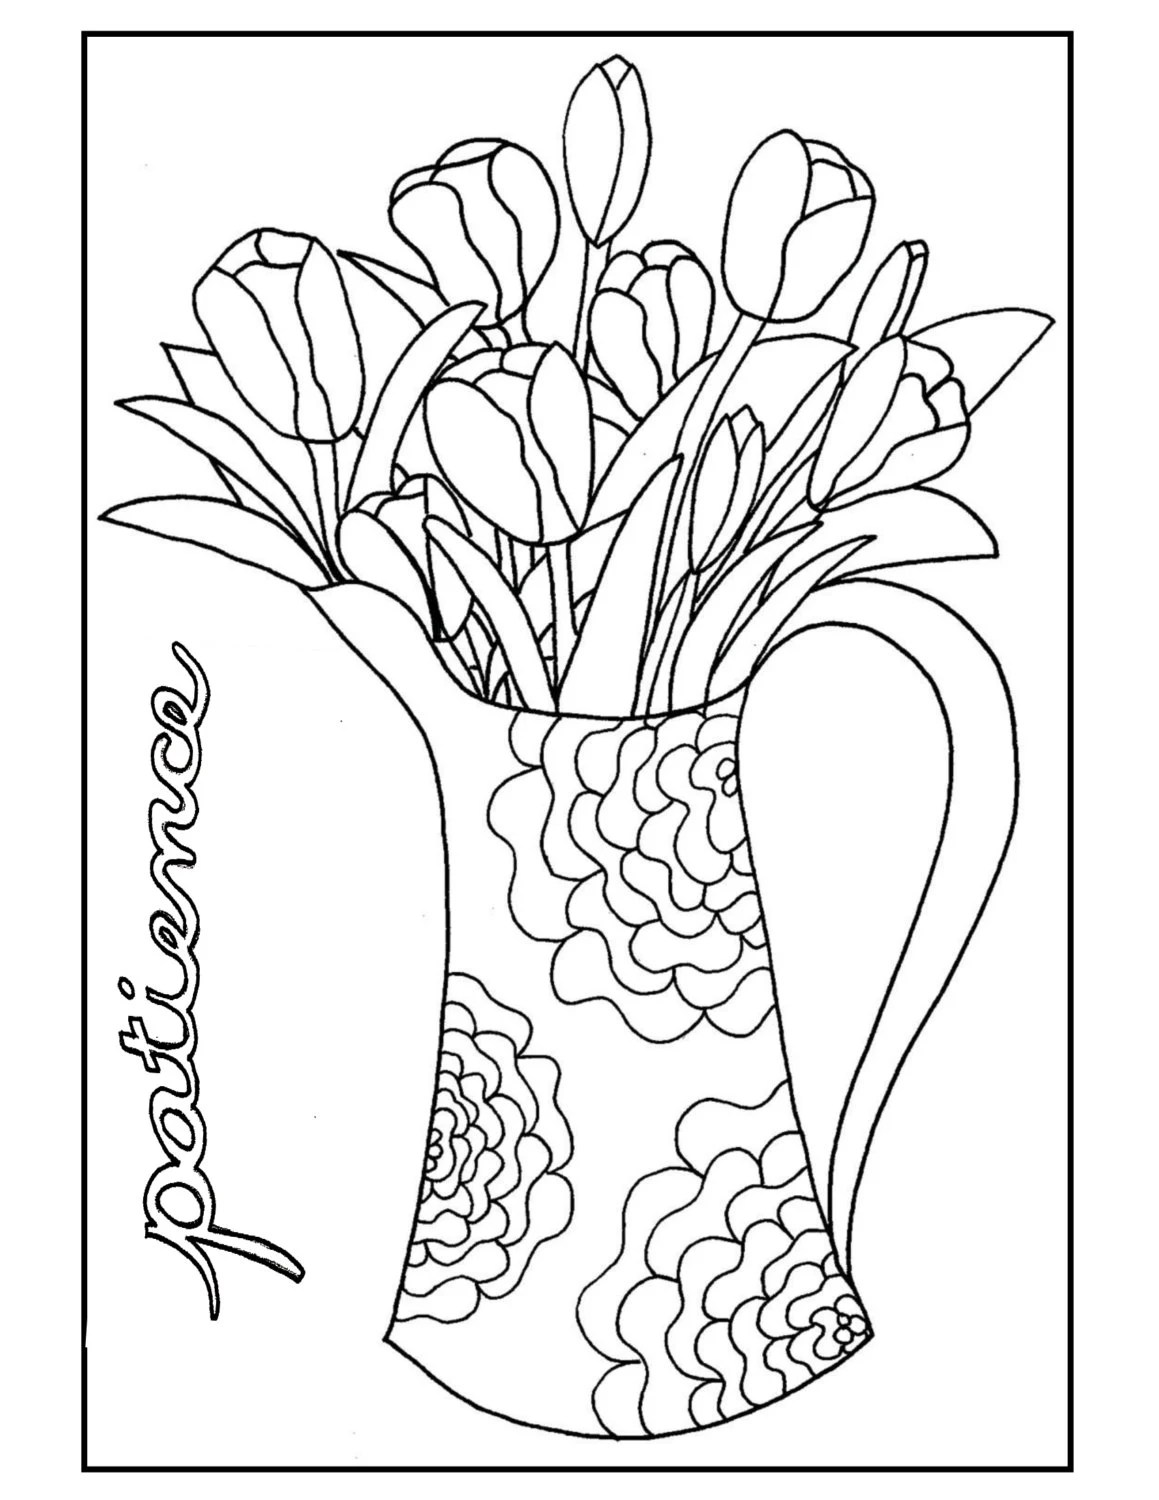 Coloring Page Color4aCause: Autism Patience/Tulips by